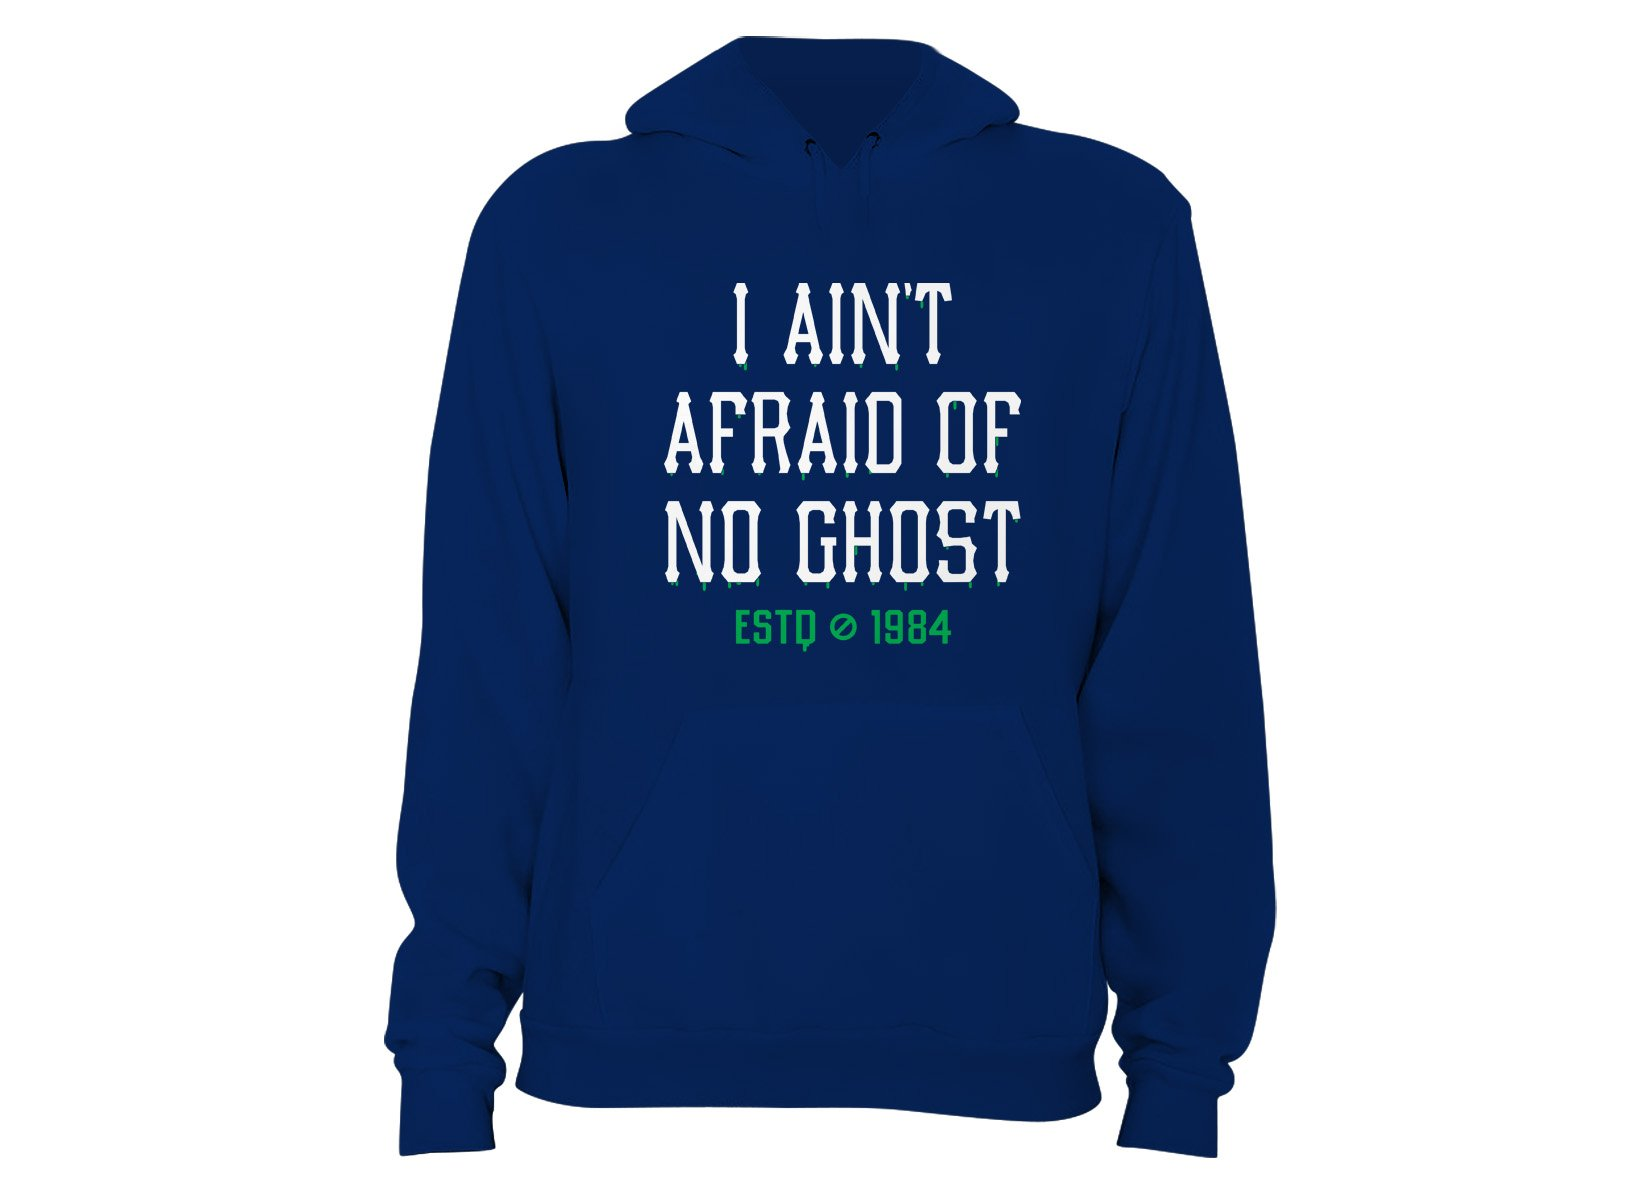 I Ain't Afraid Of No Ghost on Hoodie